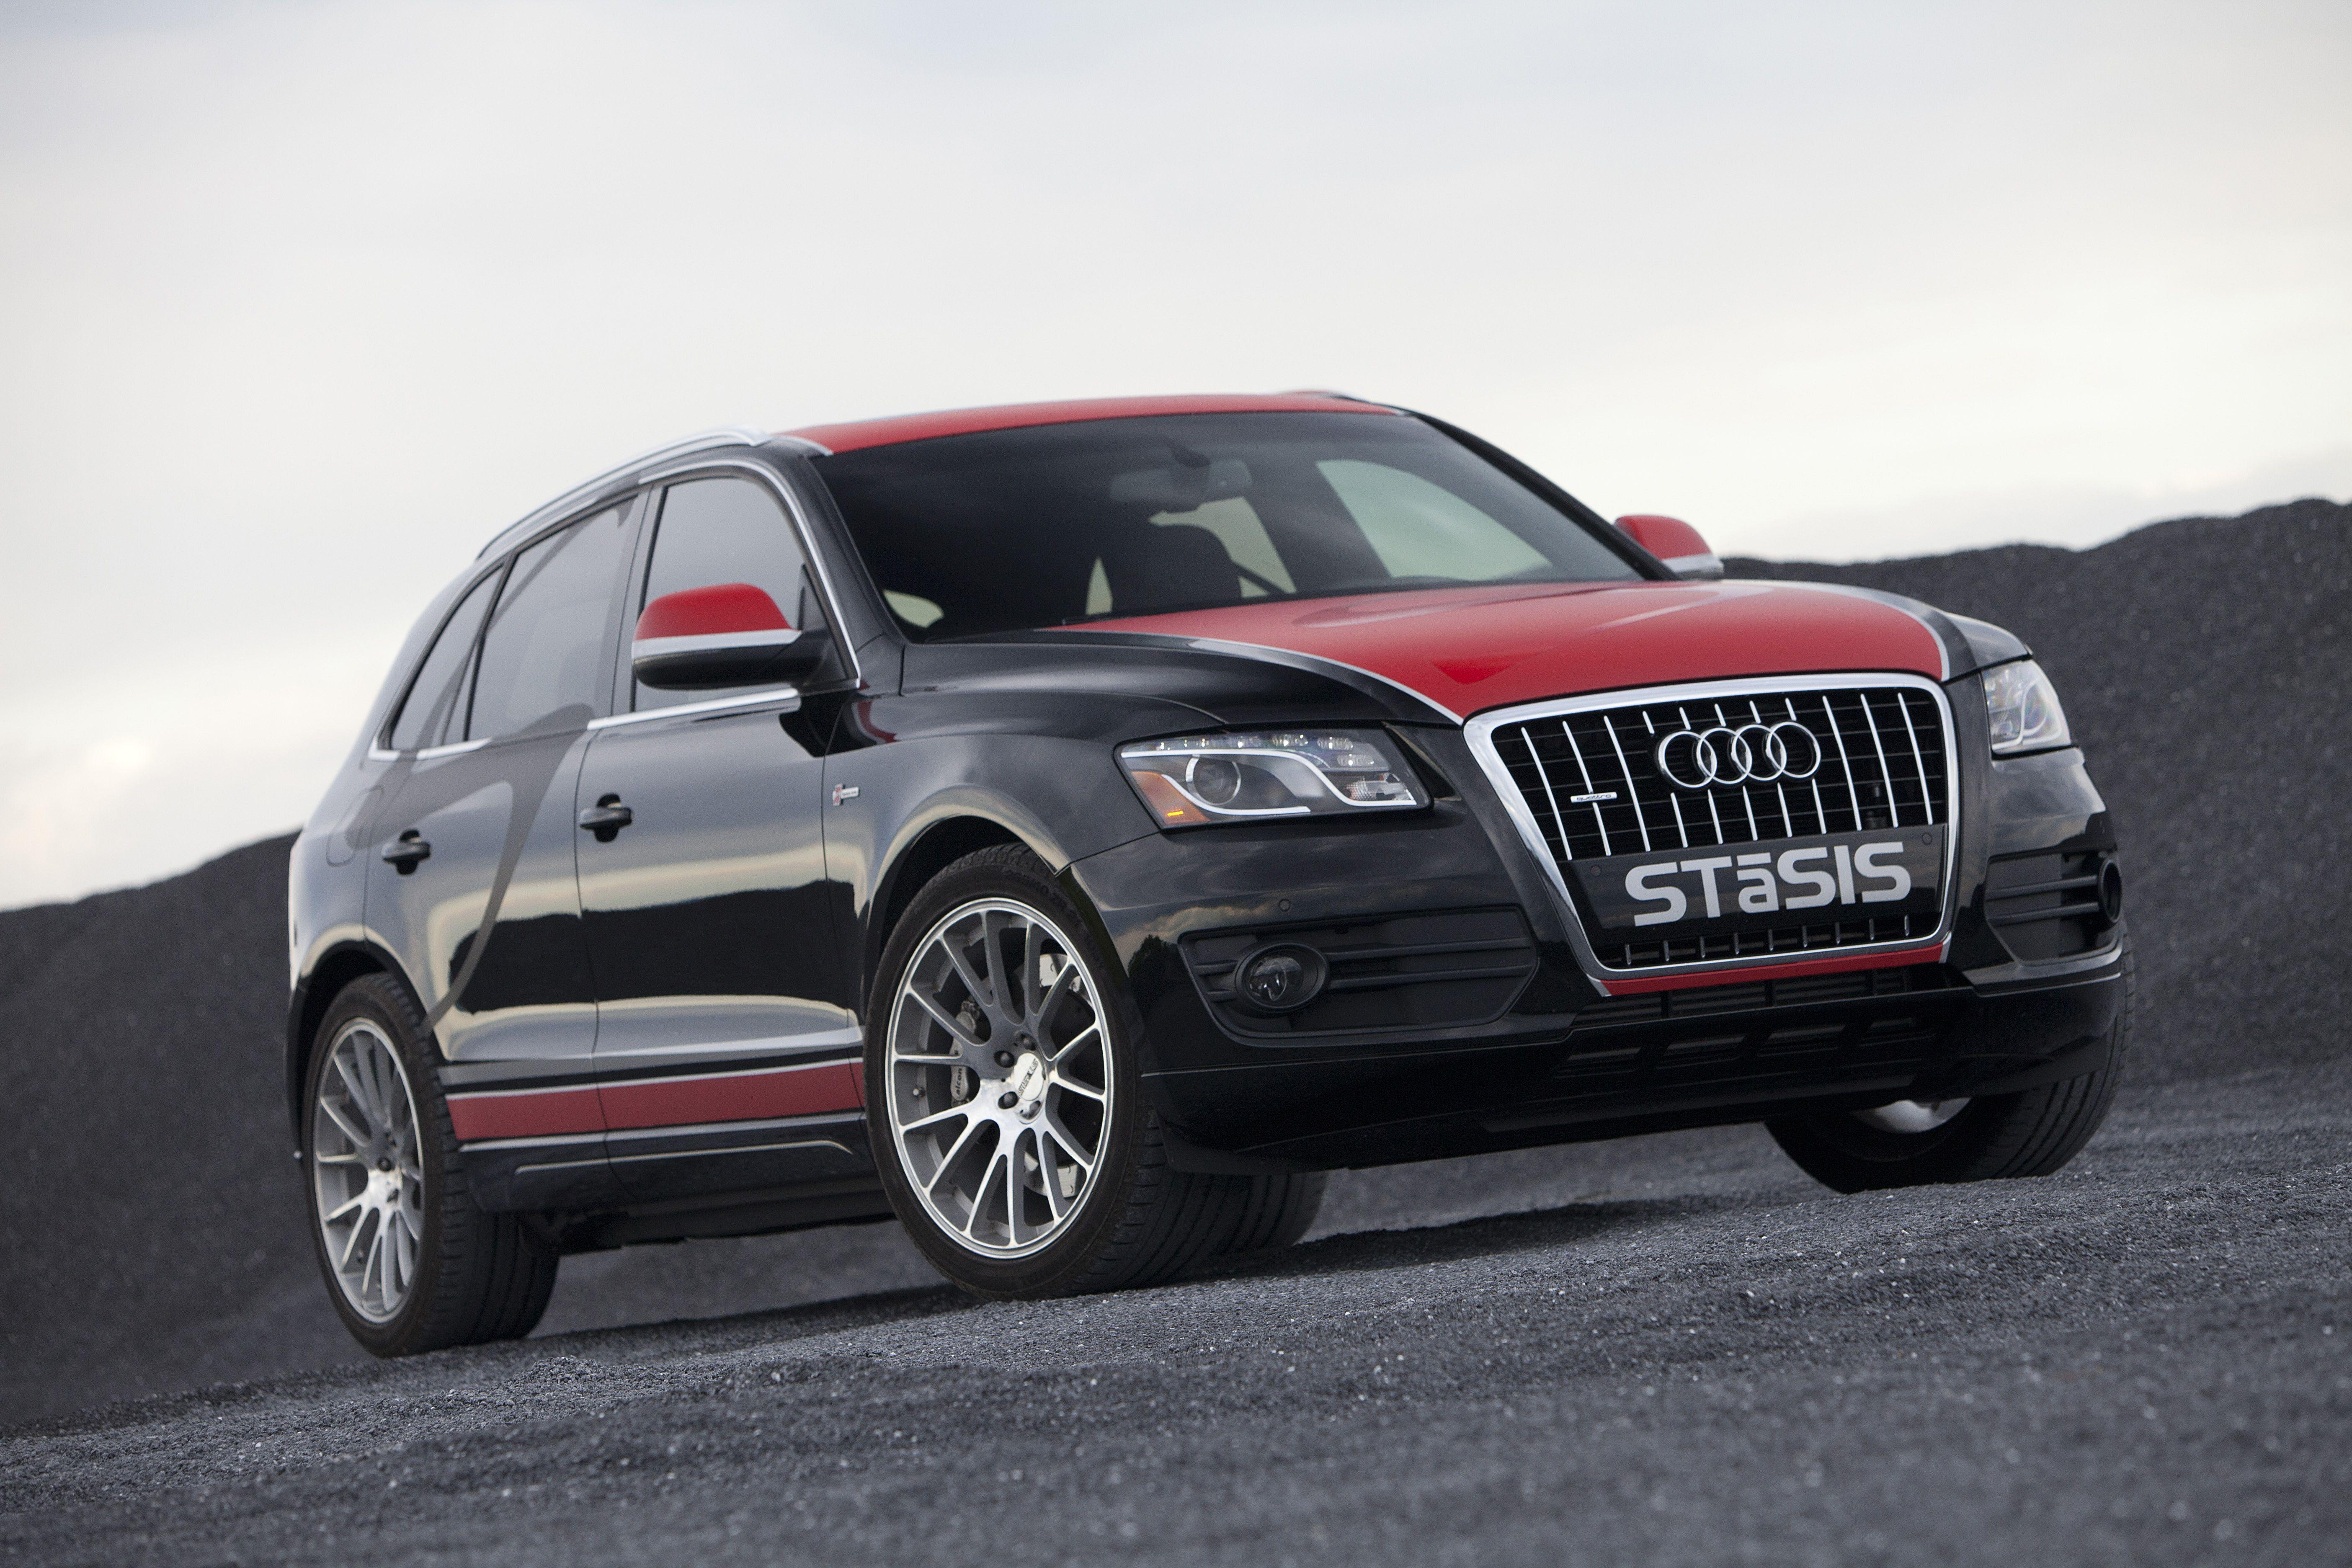 Audi Q5 Wallpapers | Cars Wallpapers Gallery - PC ...